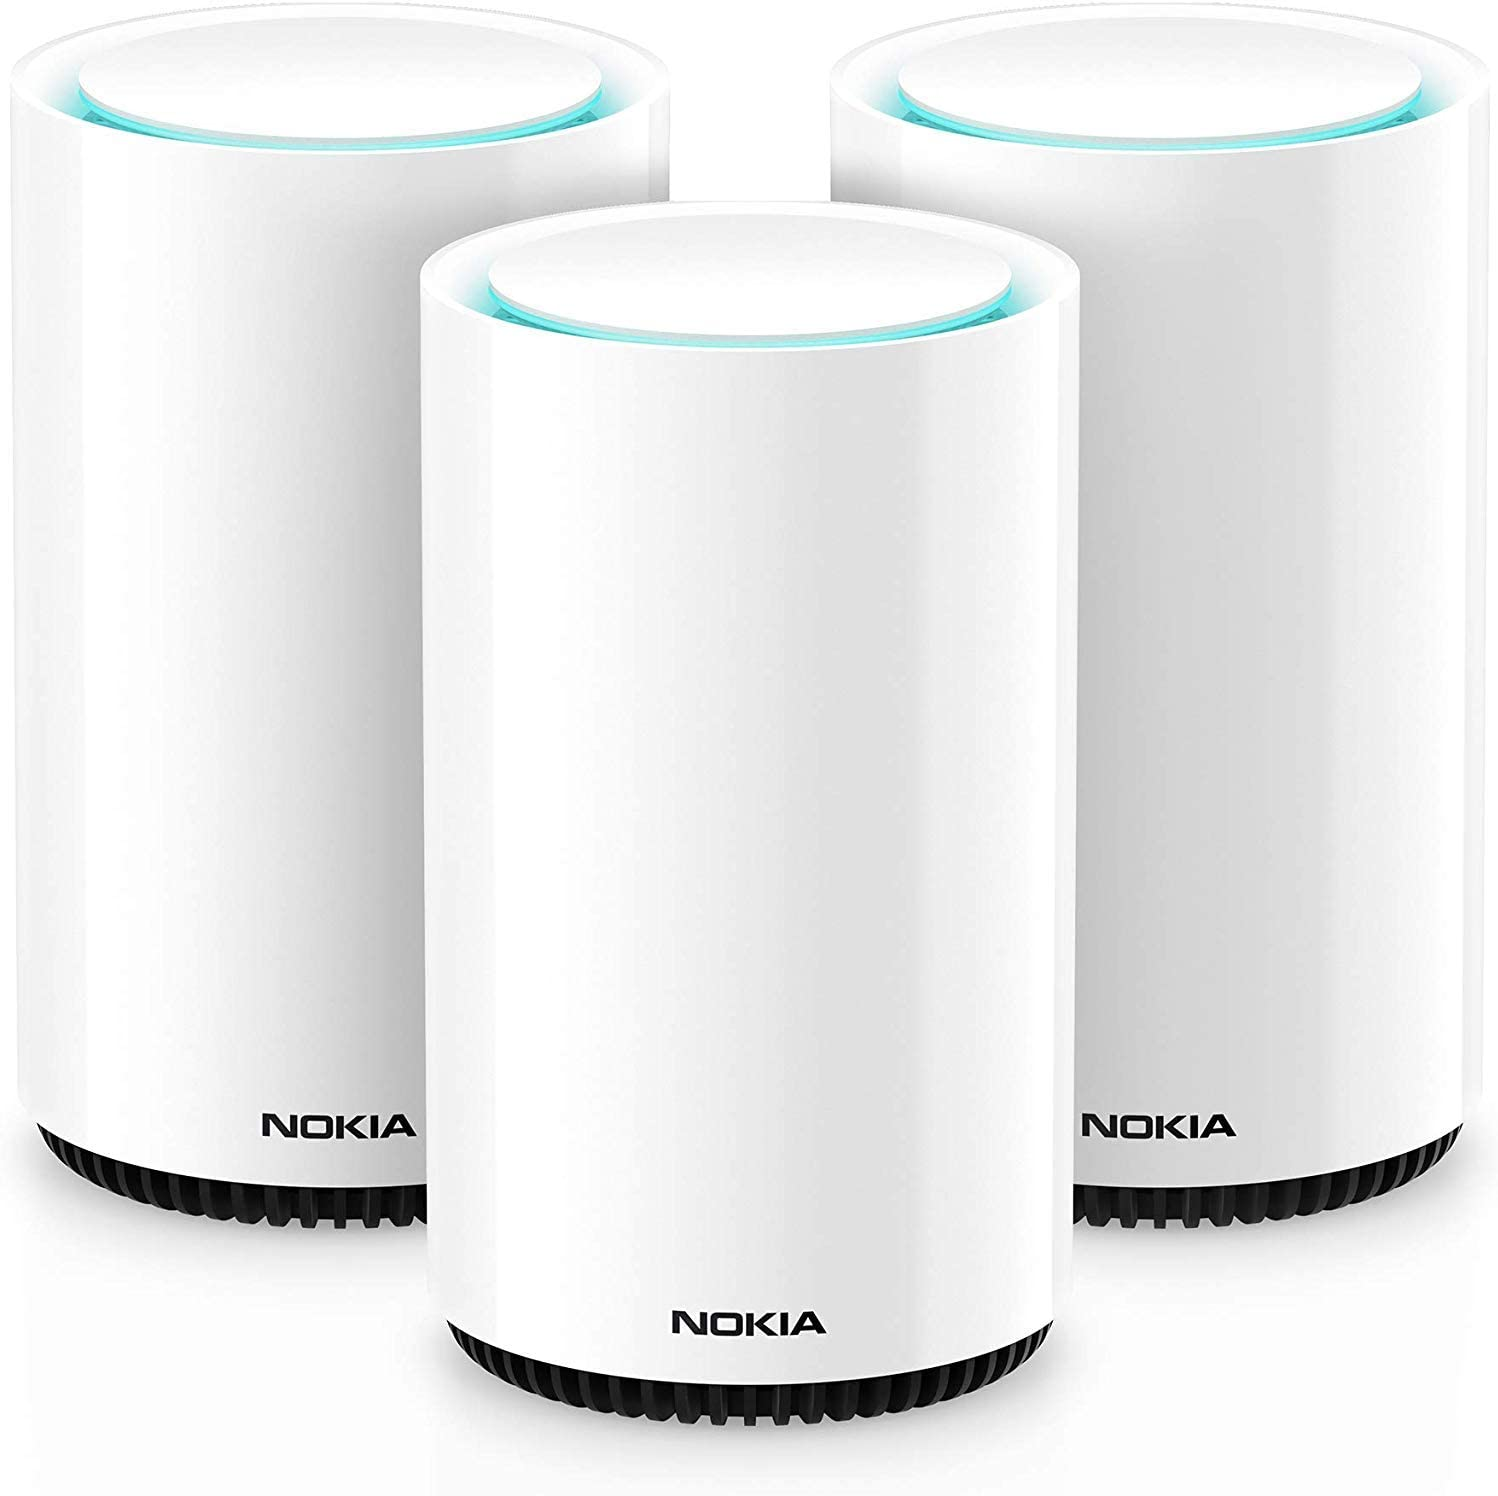 Nokia WiFi Beacon 3 Mesh Router System - Intelligent, Seamless Whole Home WiFi Coverage Extender - Connect Your Whole House WiFi Network, Ultra Fast Self-Healing Mesh Router System – Trio (3-Pack)